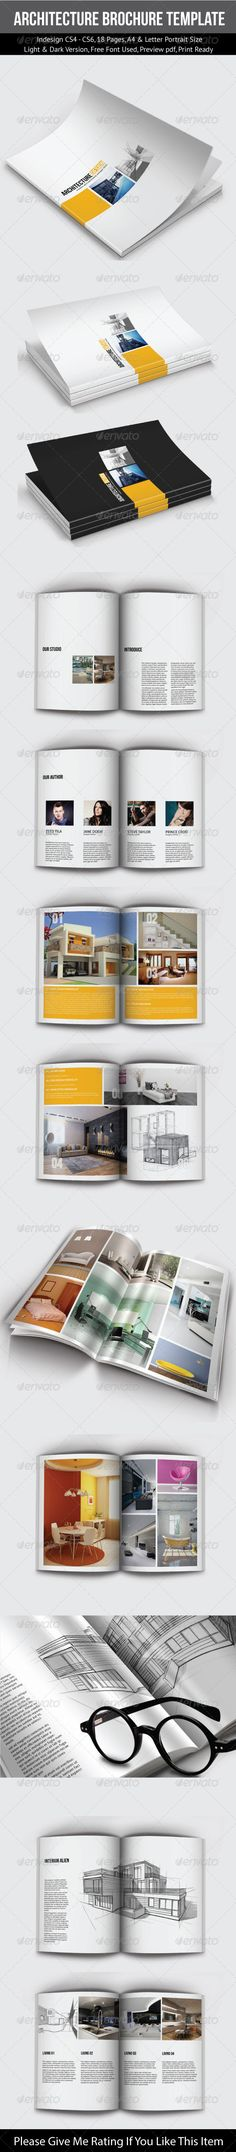 Modern Image Brochure  Brochures And Corporate Brochure